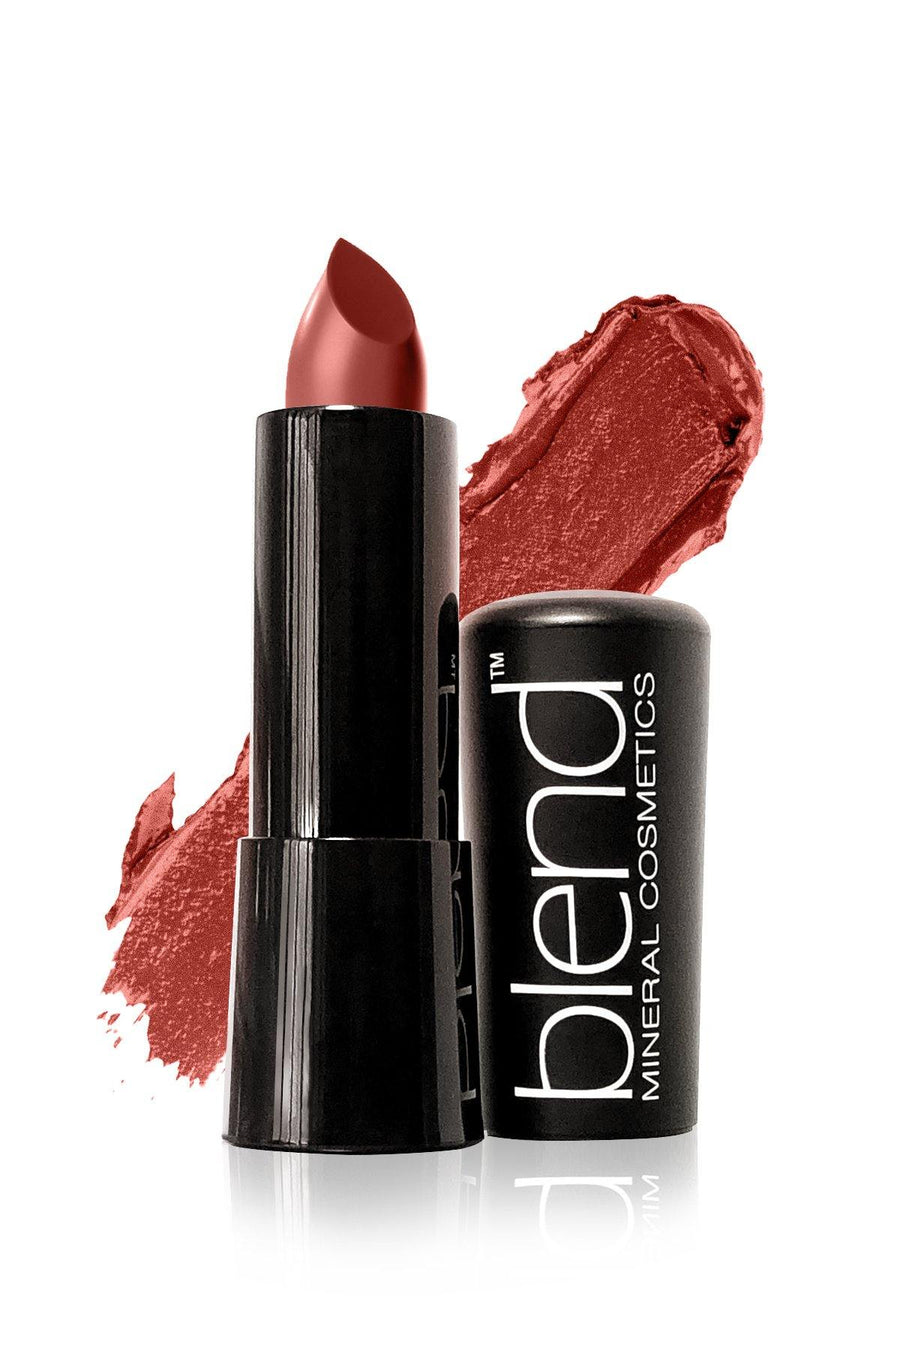 Lipstick #10 - Deep Brown Red - Blend Mineral Cosmetics